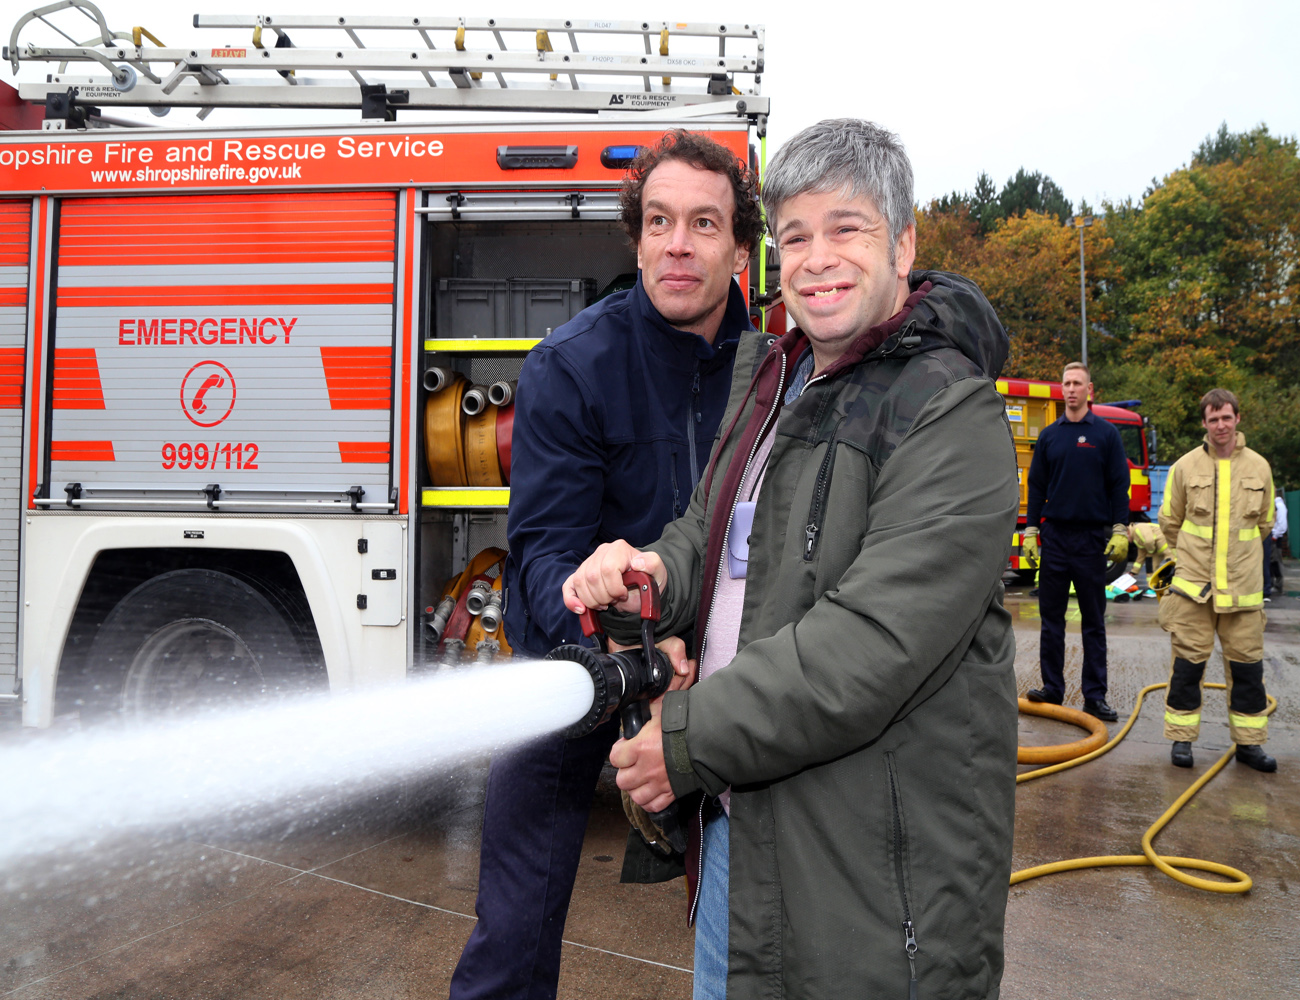 Firefighter Martin Poole shows Martin McCusker how to put out fires.